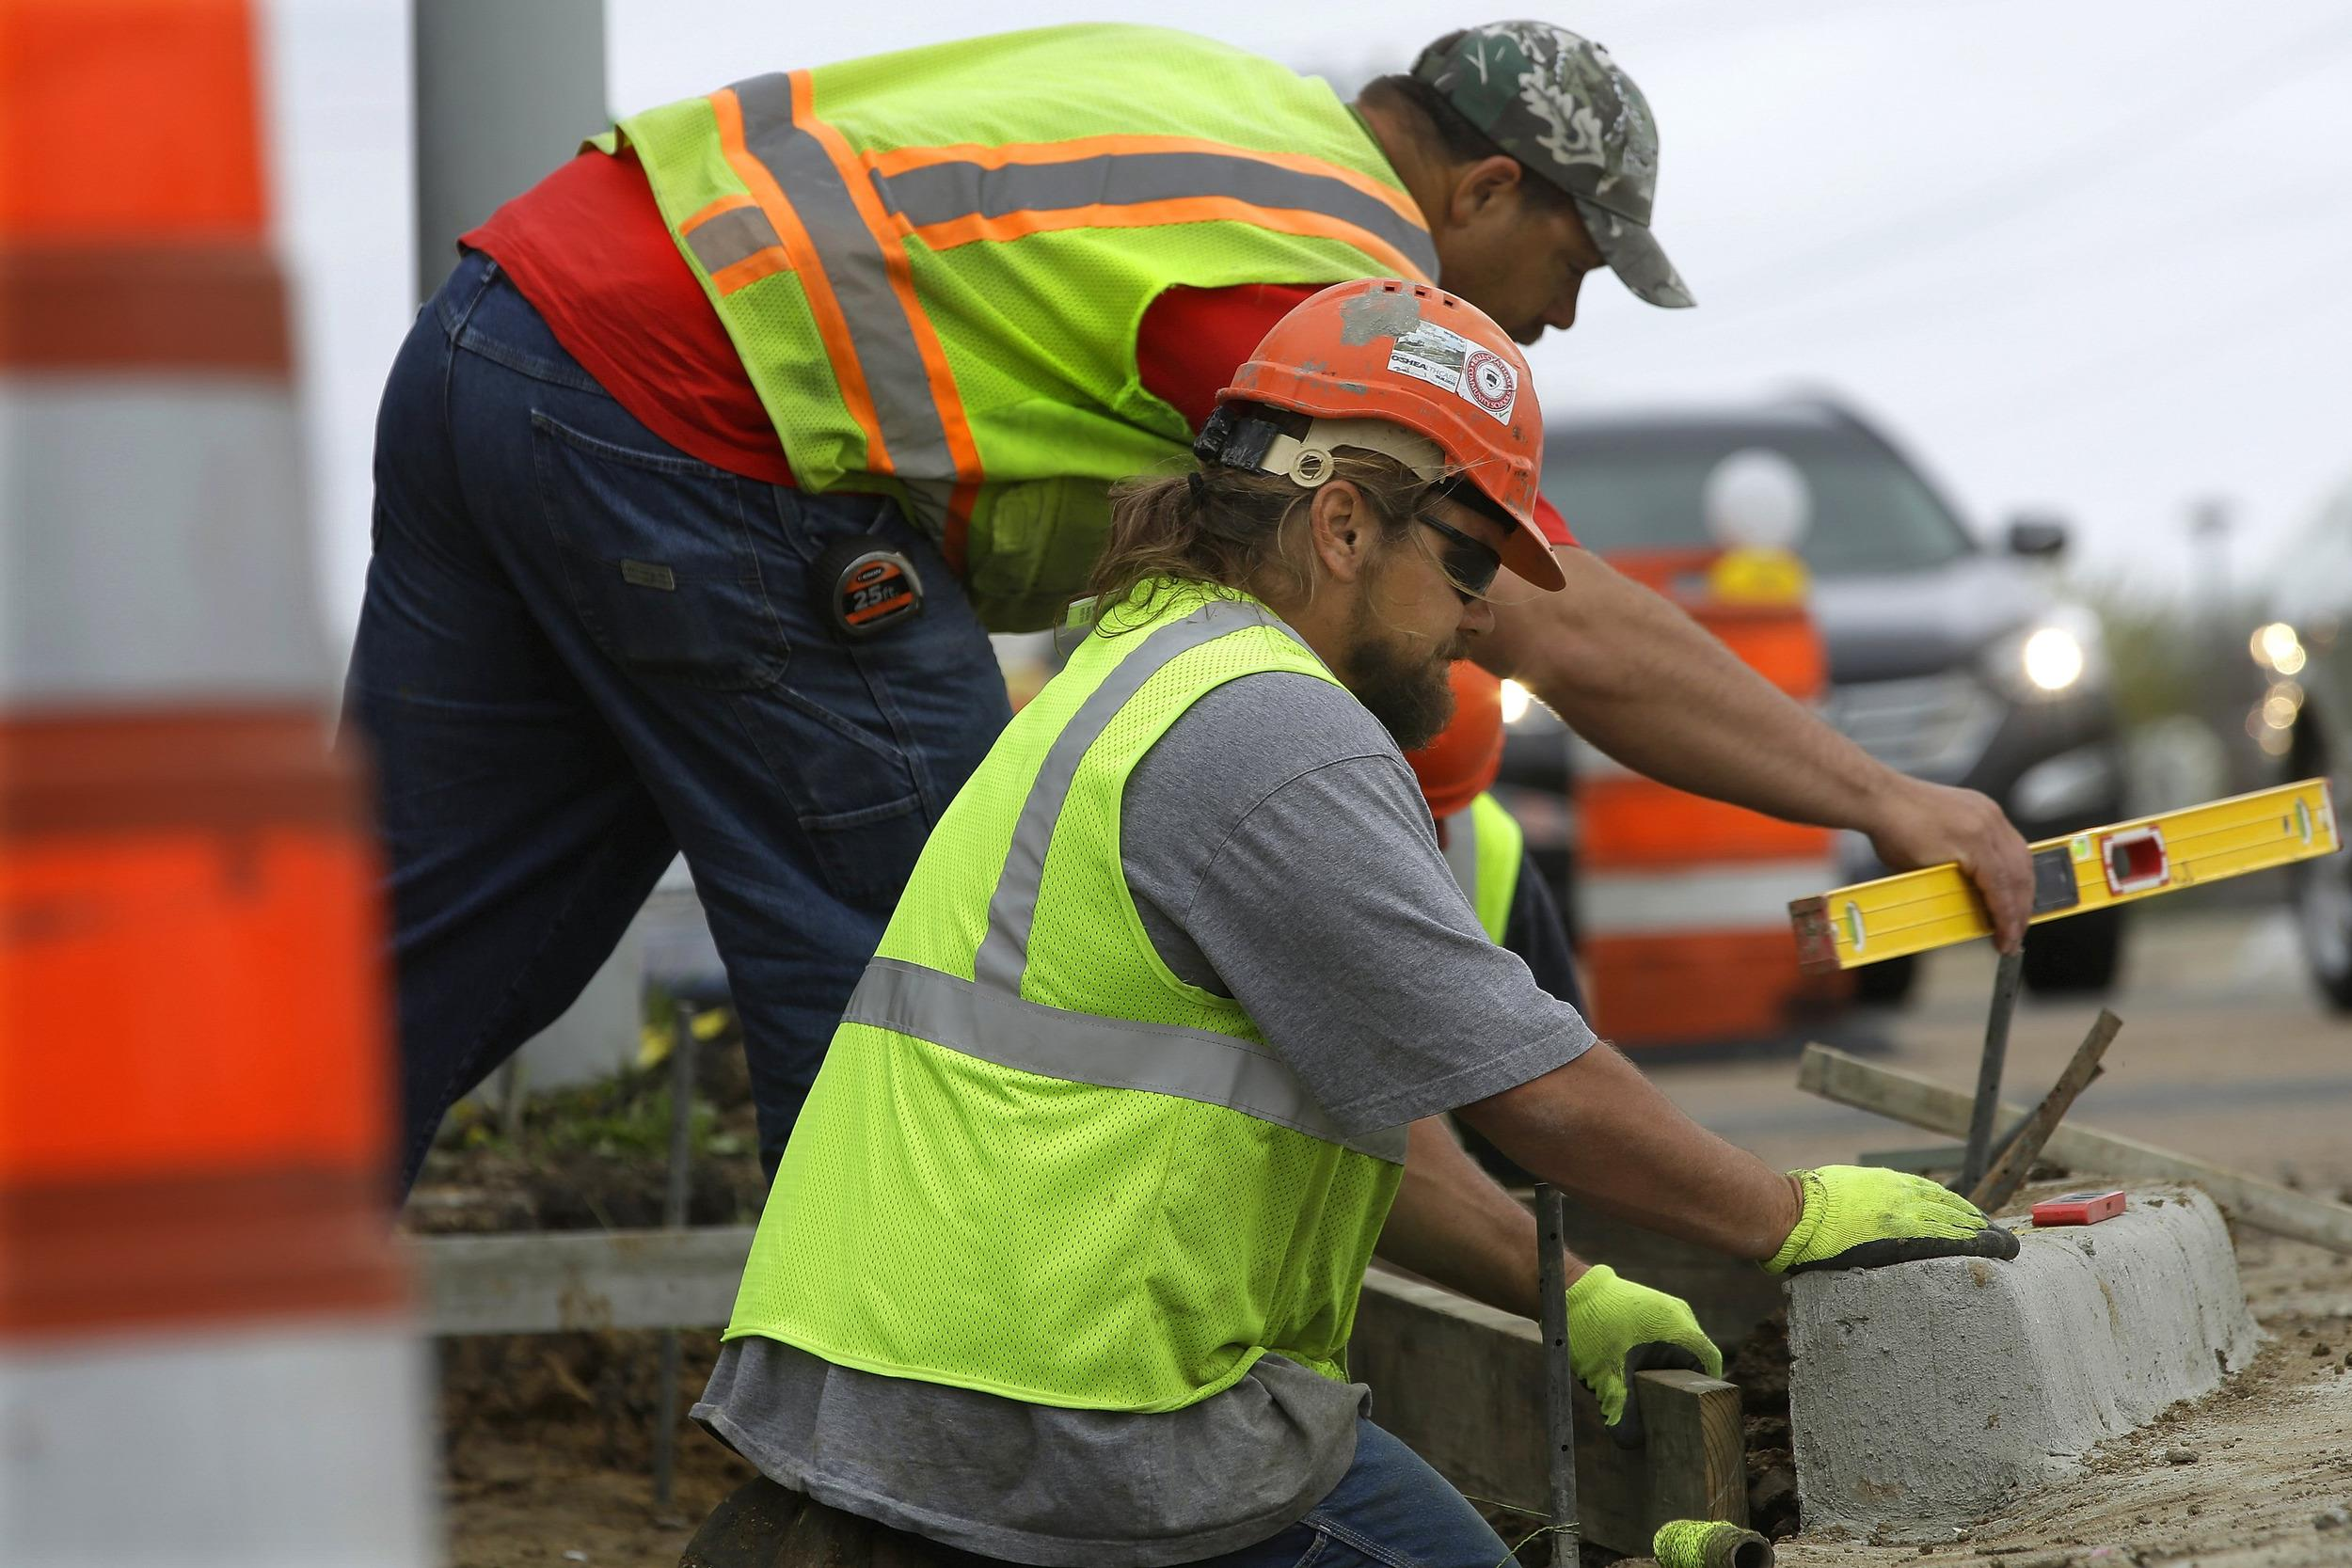 America's infrastructure—the backbone of the economy—is producing a lot more well-paying jobs than just shovel-ready construction projects, according to the Brookings Metropolitan Policy Program.